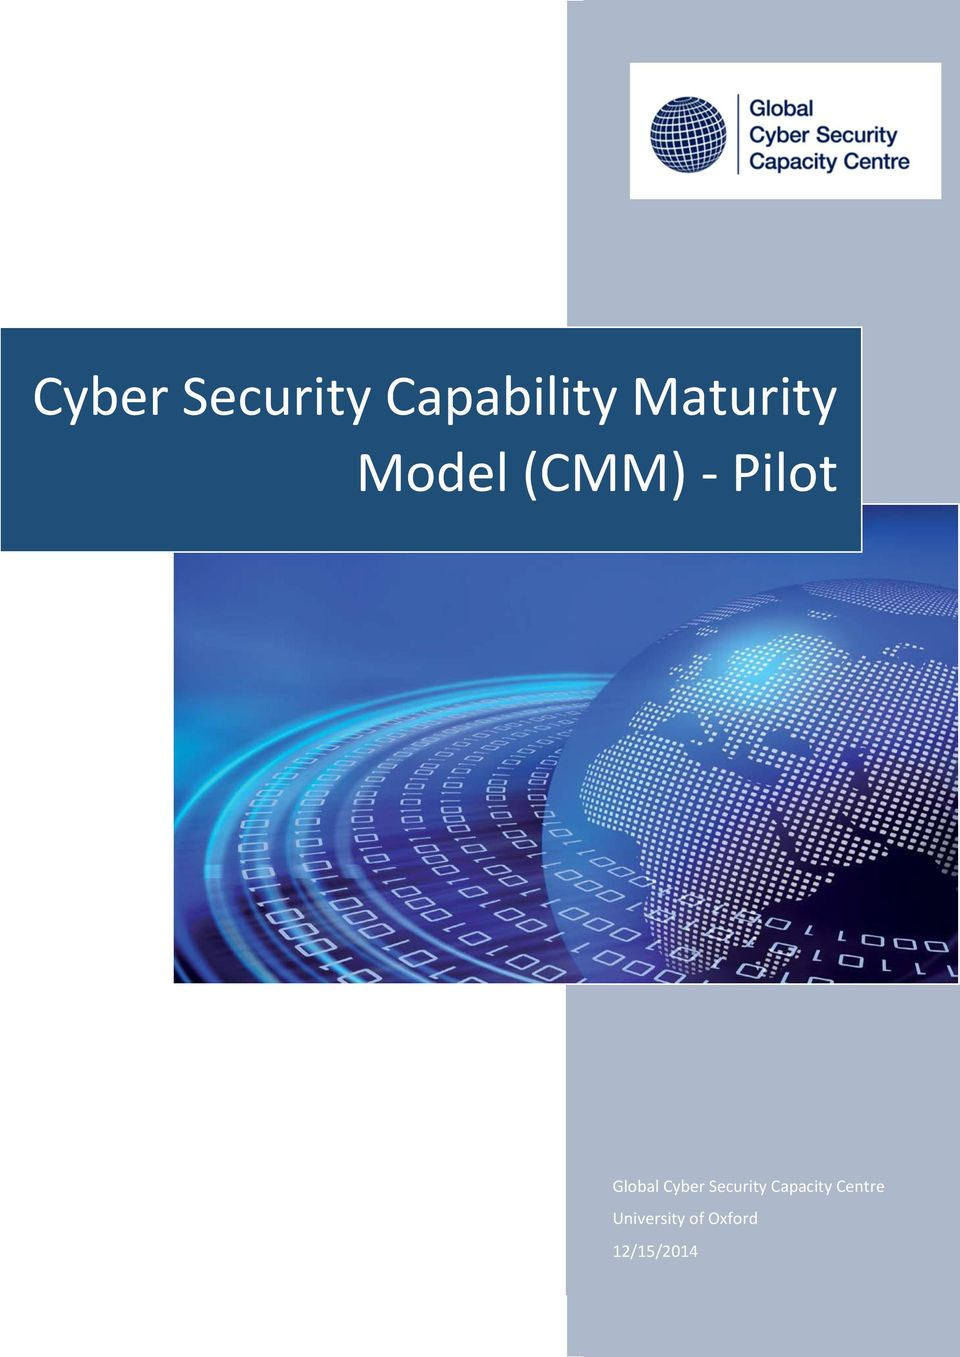 Global Cyber Security Capacity